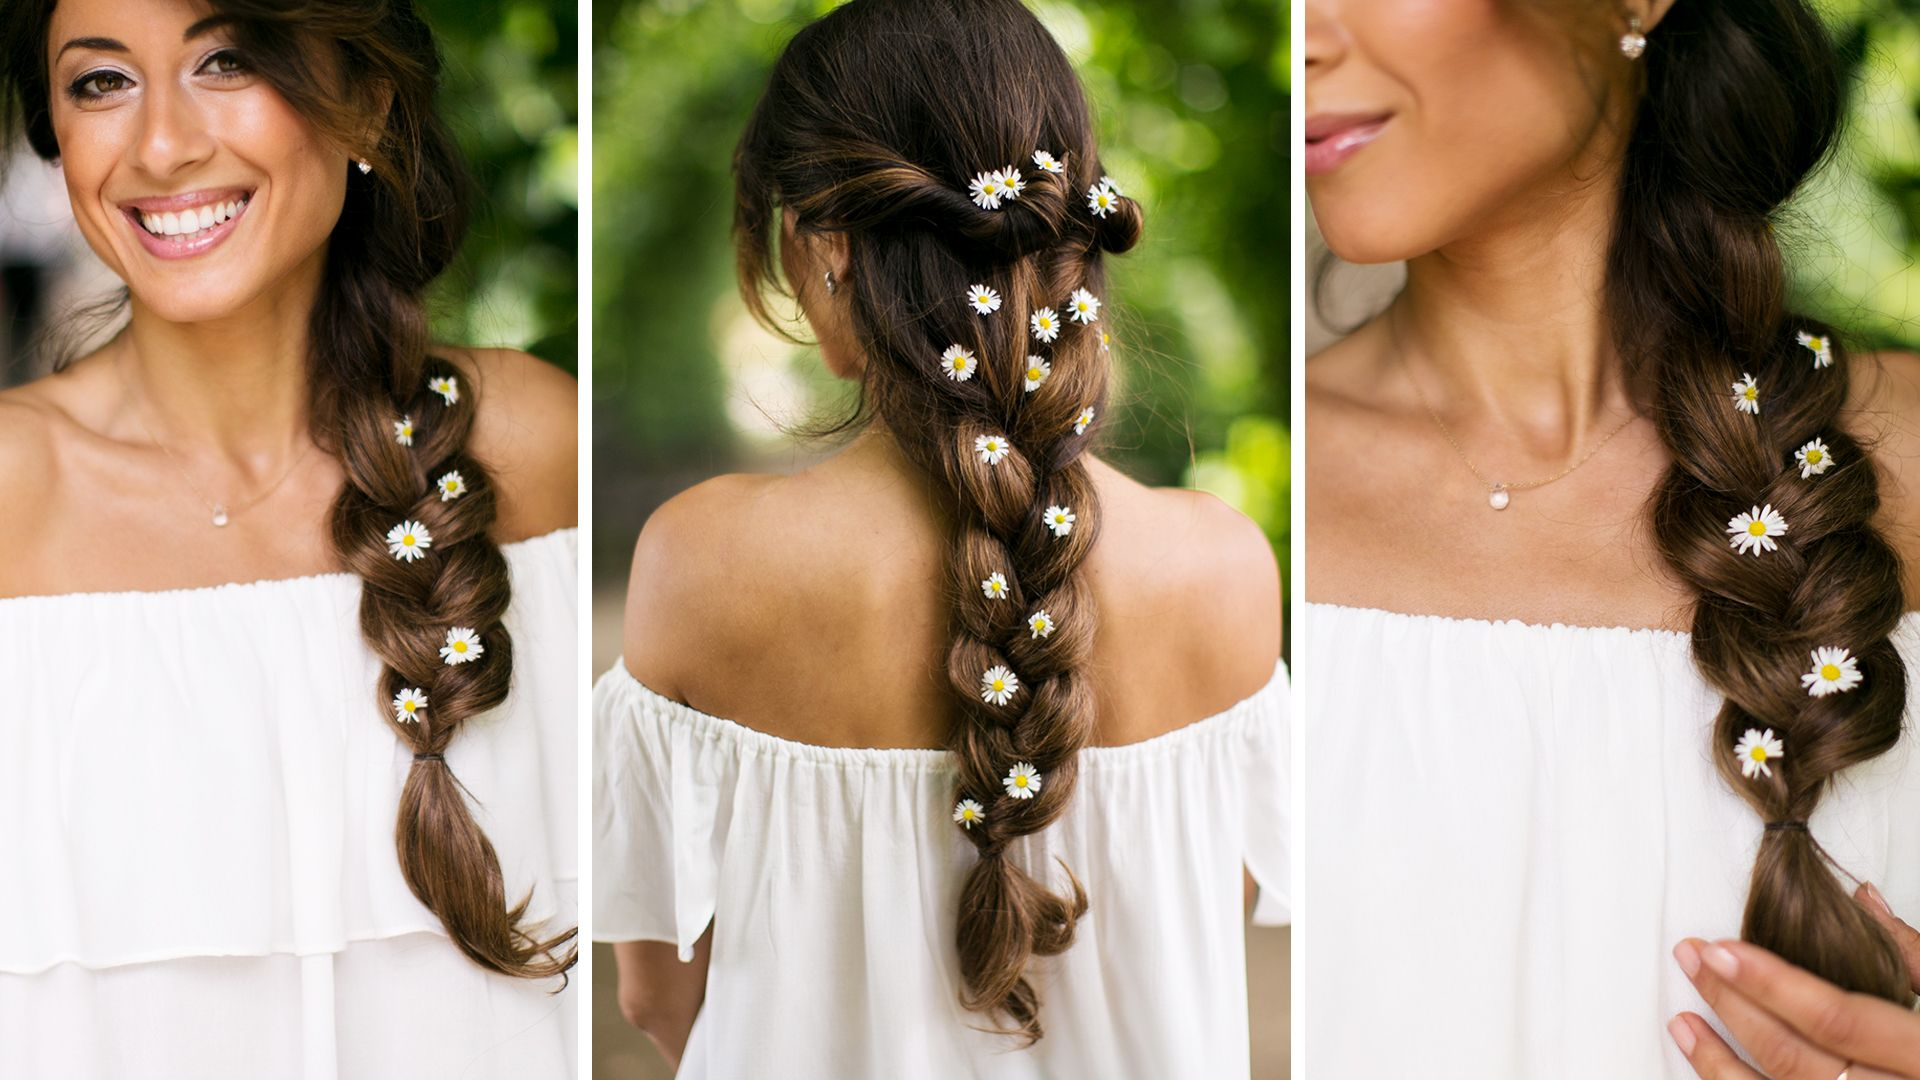 Floral Summer Braid created with Ombre Chestnut Luxy Hair Extensions